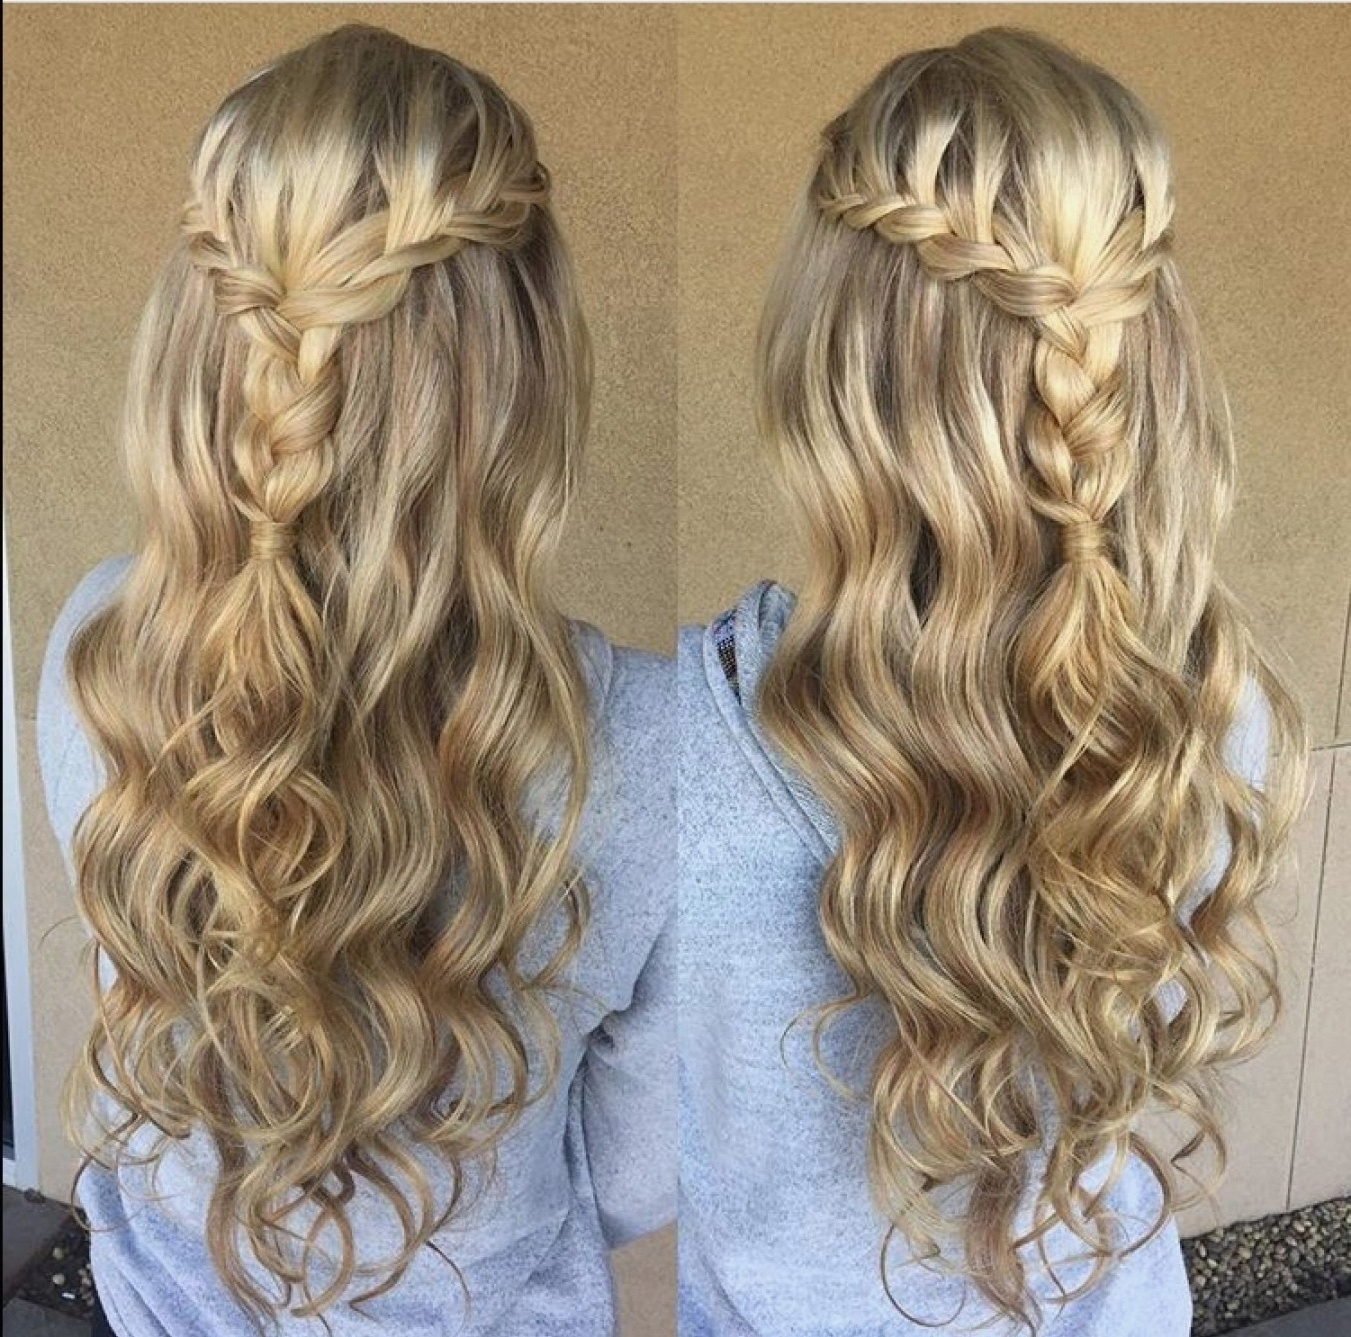 Braid Hairstyles : Cool Half Up Half Down Braided Prom Hairstyles In Regarding Favorite Half Up Braided Hairstyles (View 12 of 15)